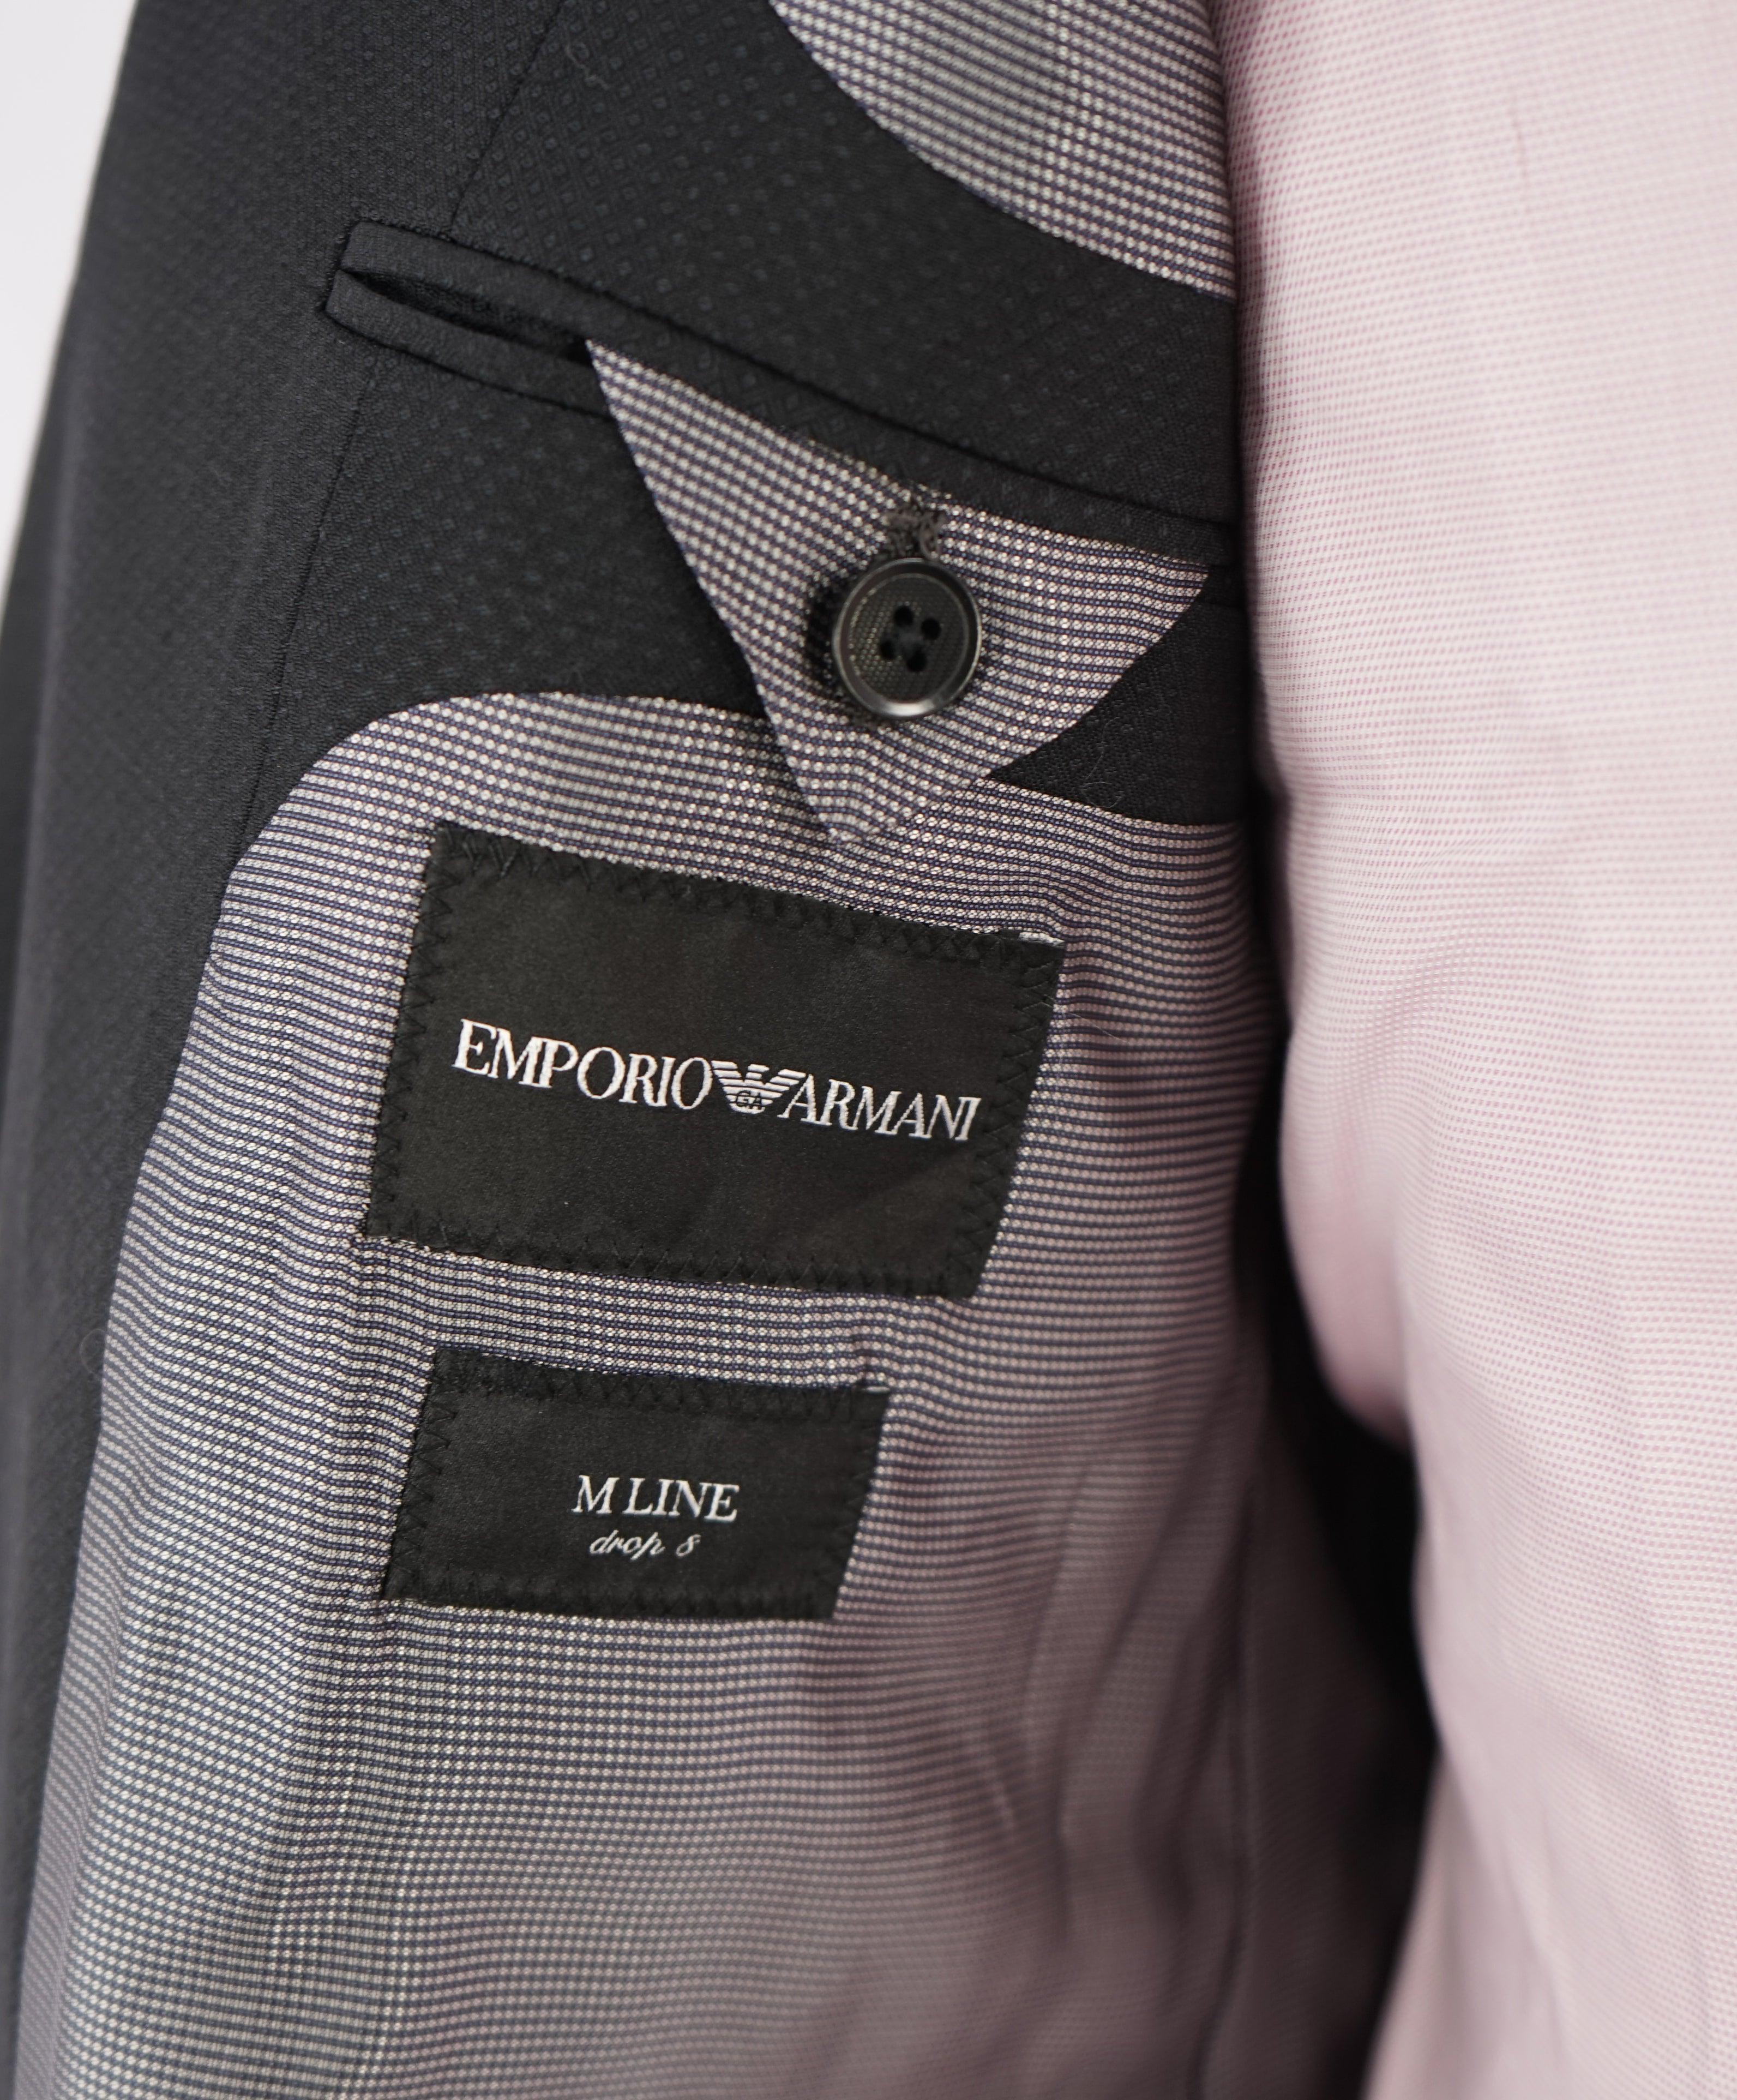 "EMPORIO ARMANI - ""M LINE"" Drop 8 Made In Italy Geometric 1-Button Suit - 48S"